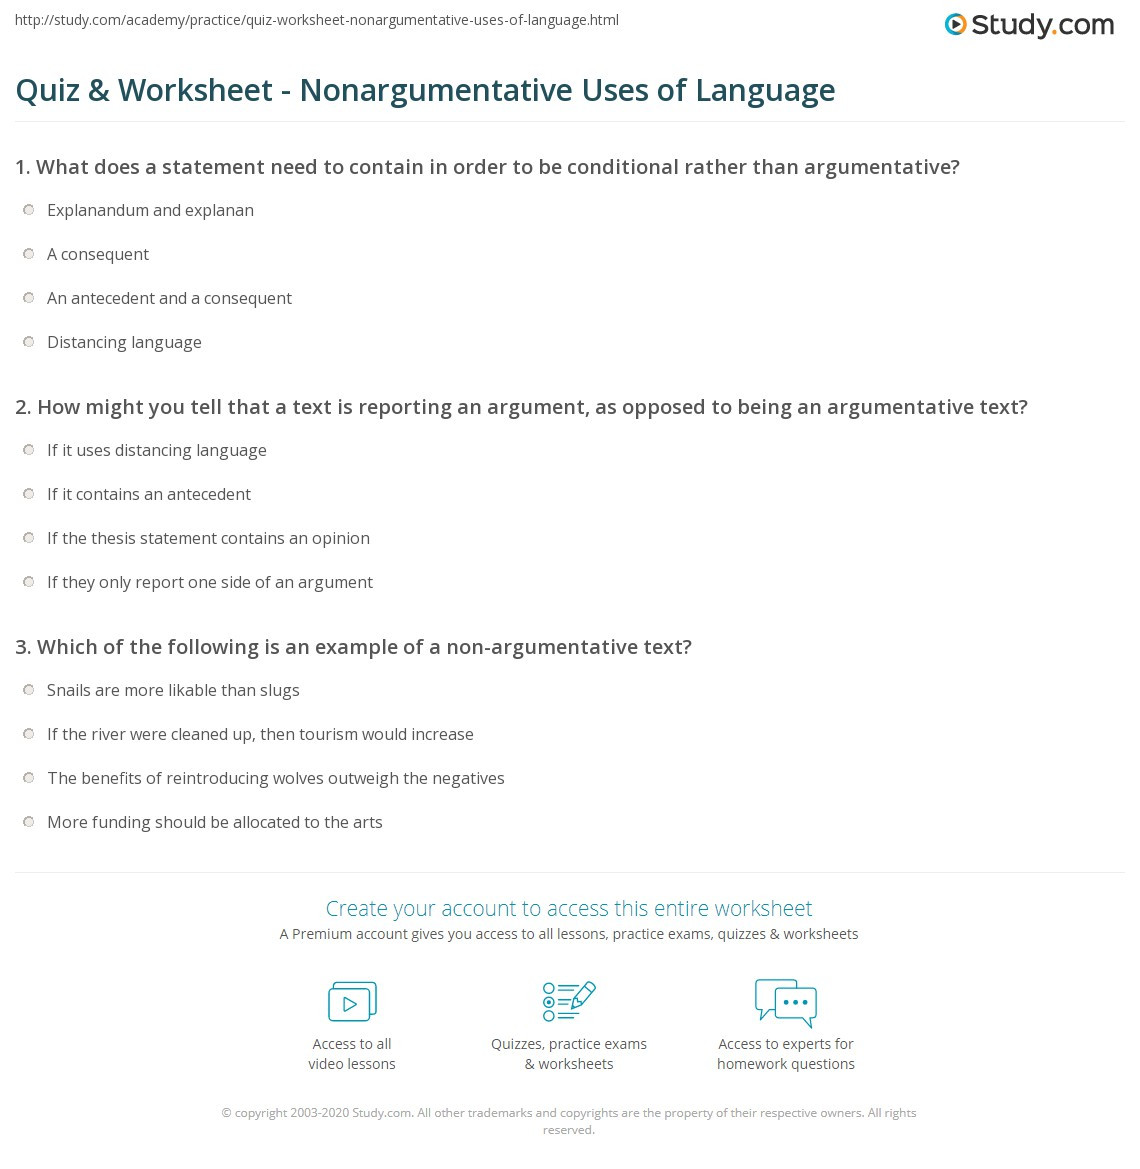 Conditional Statements Worksheet with Answers Quiz & Worksheet Nonargumentative Uses Of Language